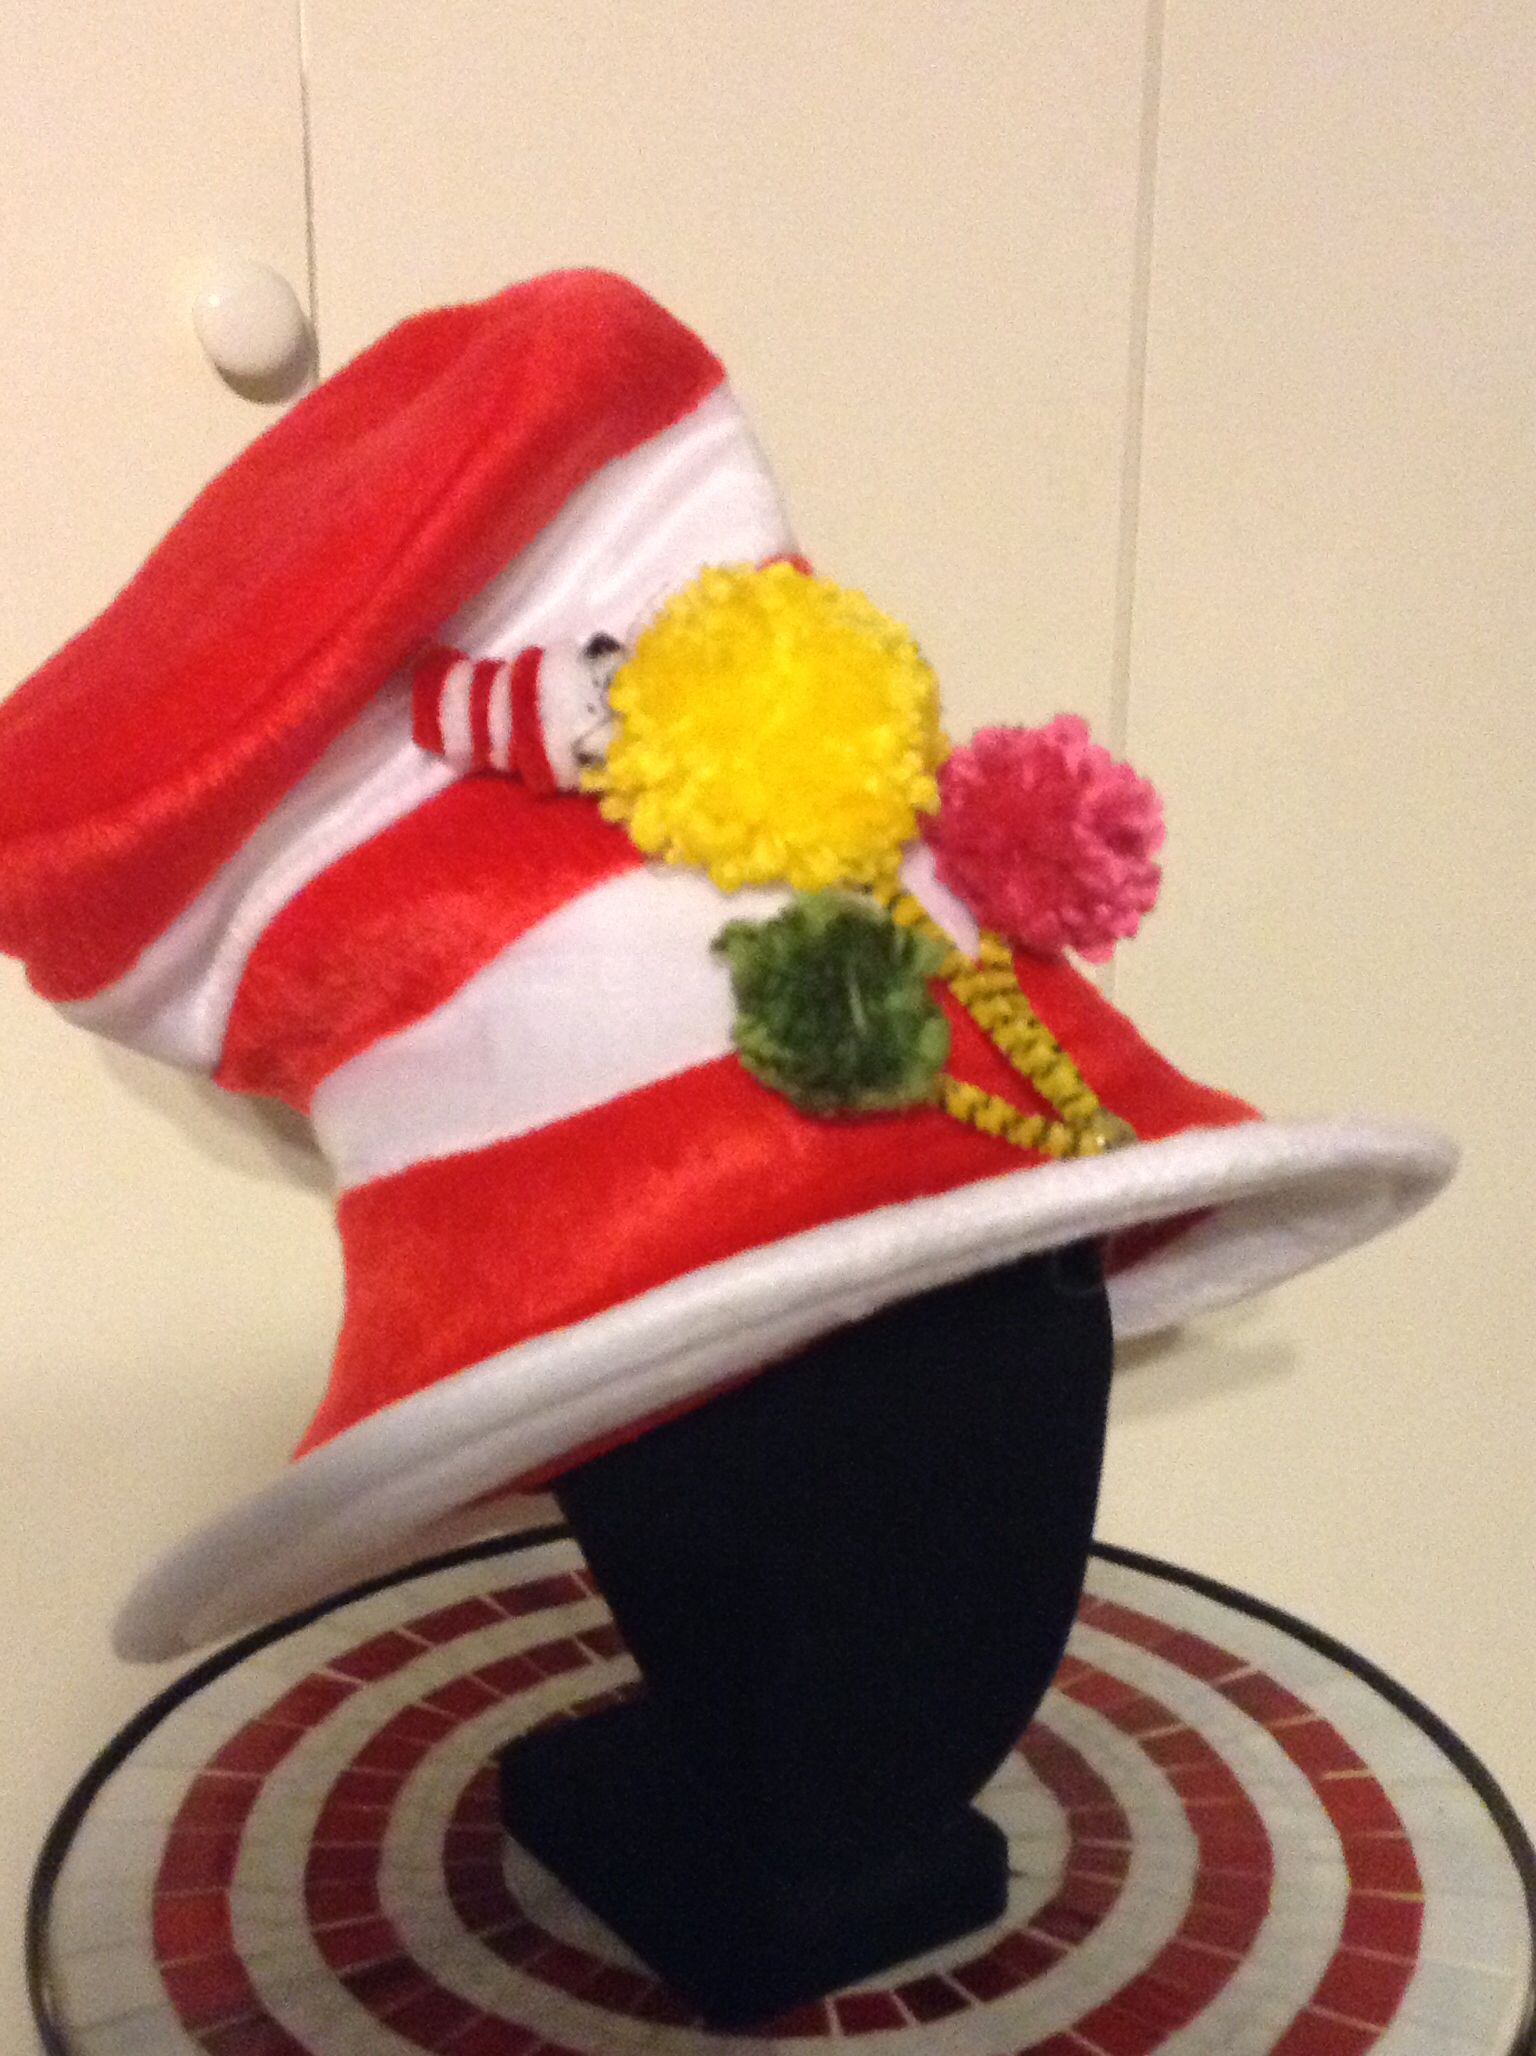 """""""Cat In The Hat"""" super easy party hat. Added pom poms to pipe cleaners to create the truffula trees from """"The Lorax"""". Created cat in the tree from pipe cleaners. Both ideas I found on Pinterest and then added to a store bought hat."""